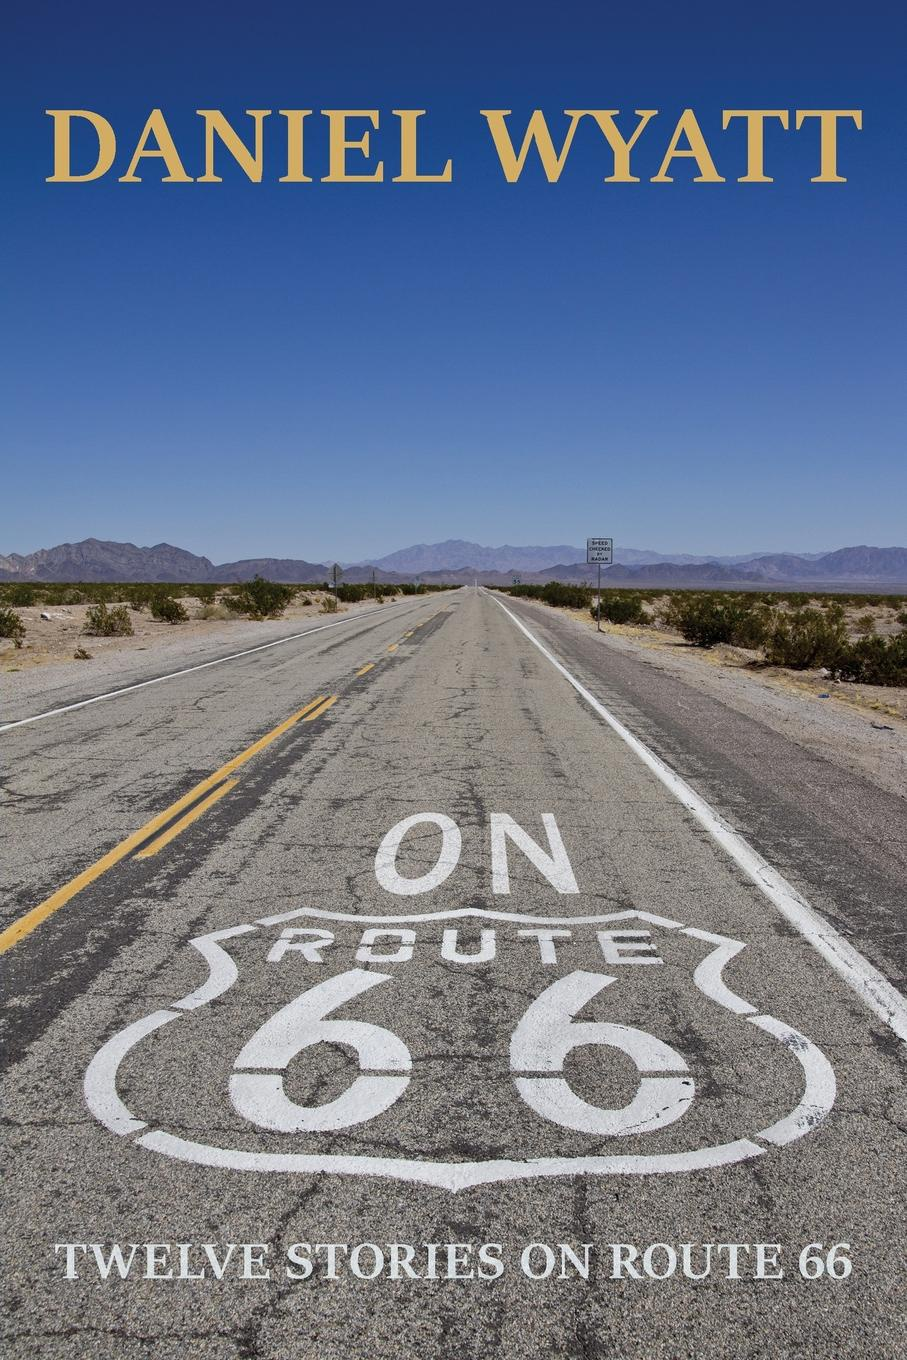 Daniel Wyatt On Route 66. Twelve stories on Route 66 on the road